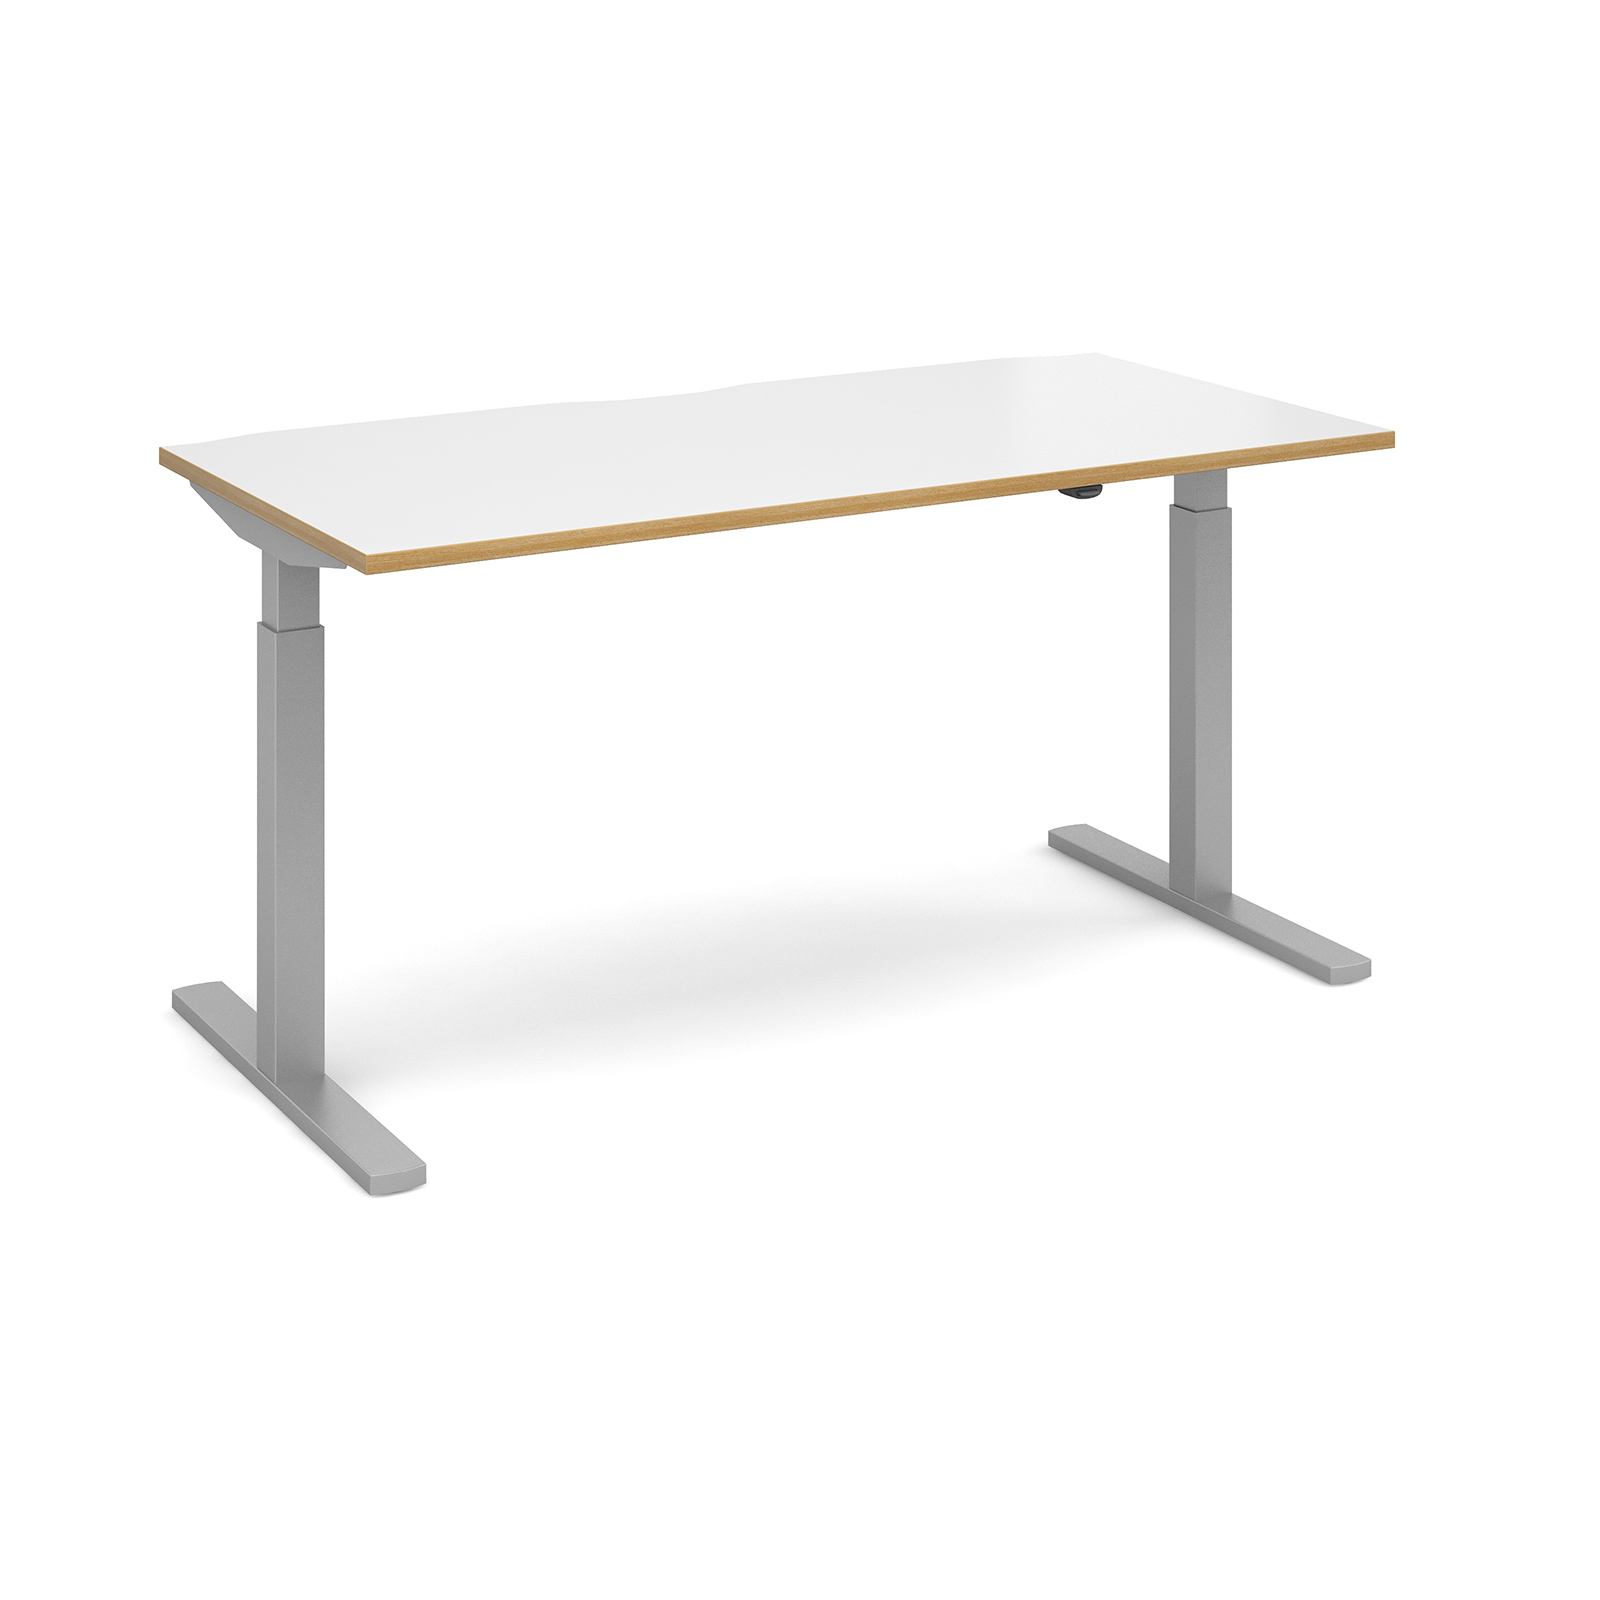 Elev8 Mono Straight Sit-Stand Desk 1600mm x 800mm - Silver Frame, White Top With Oak Edge